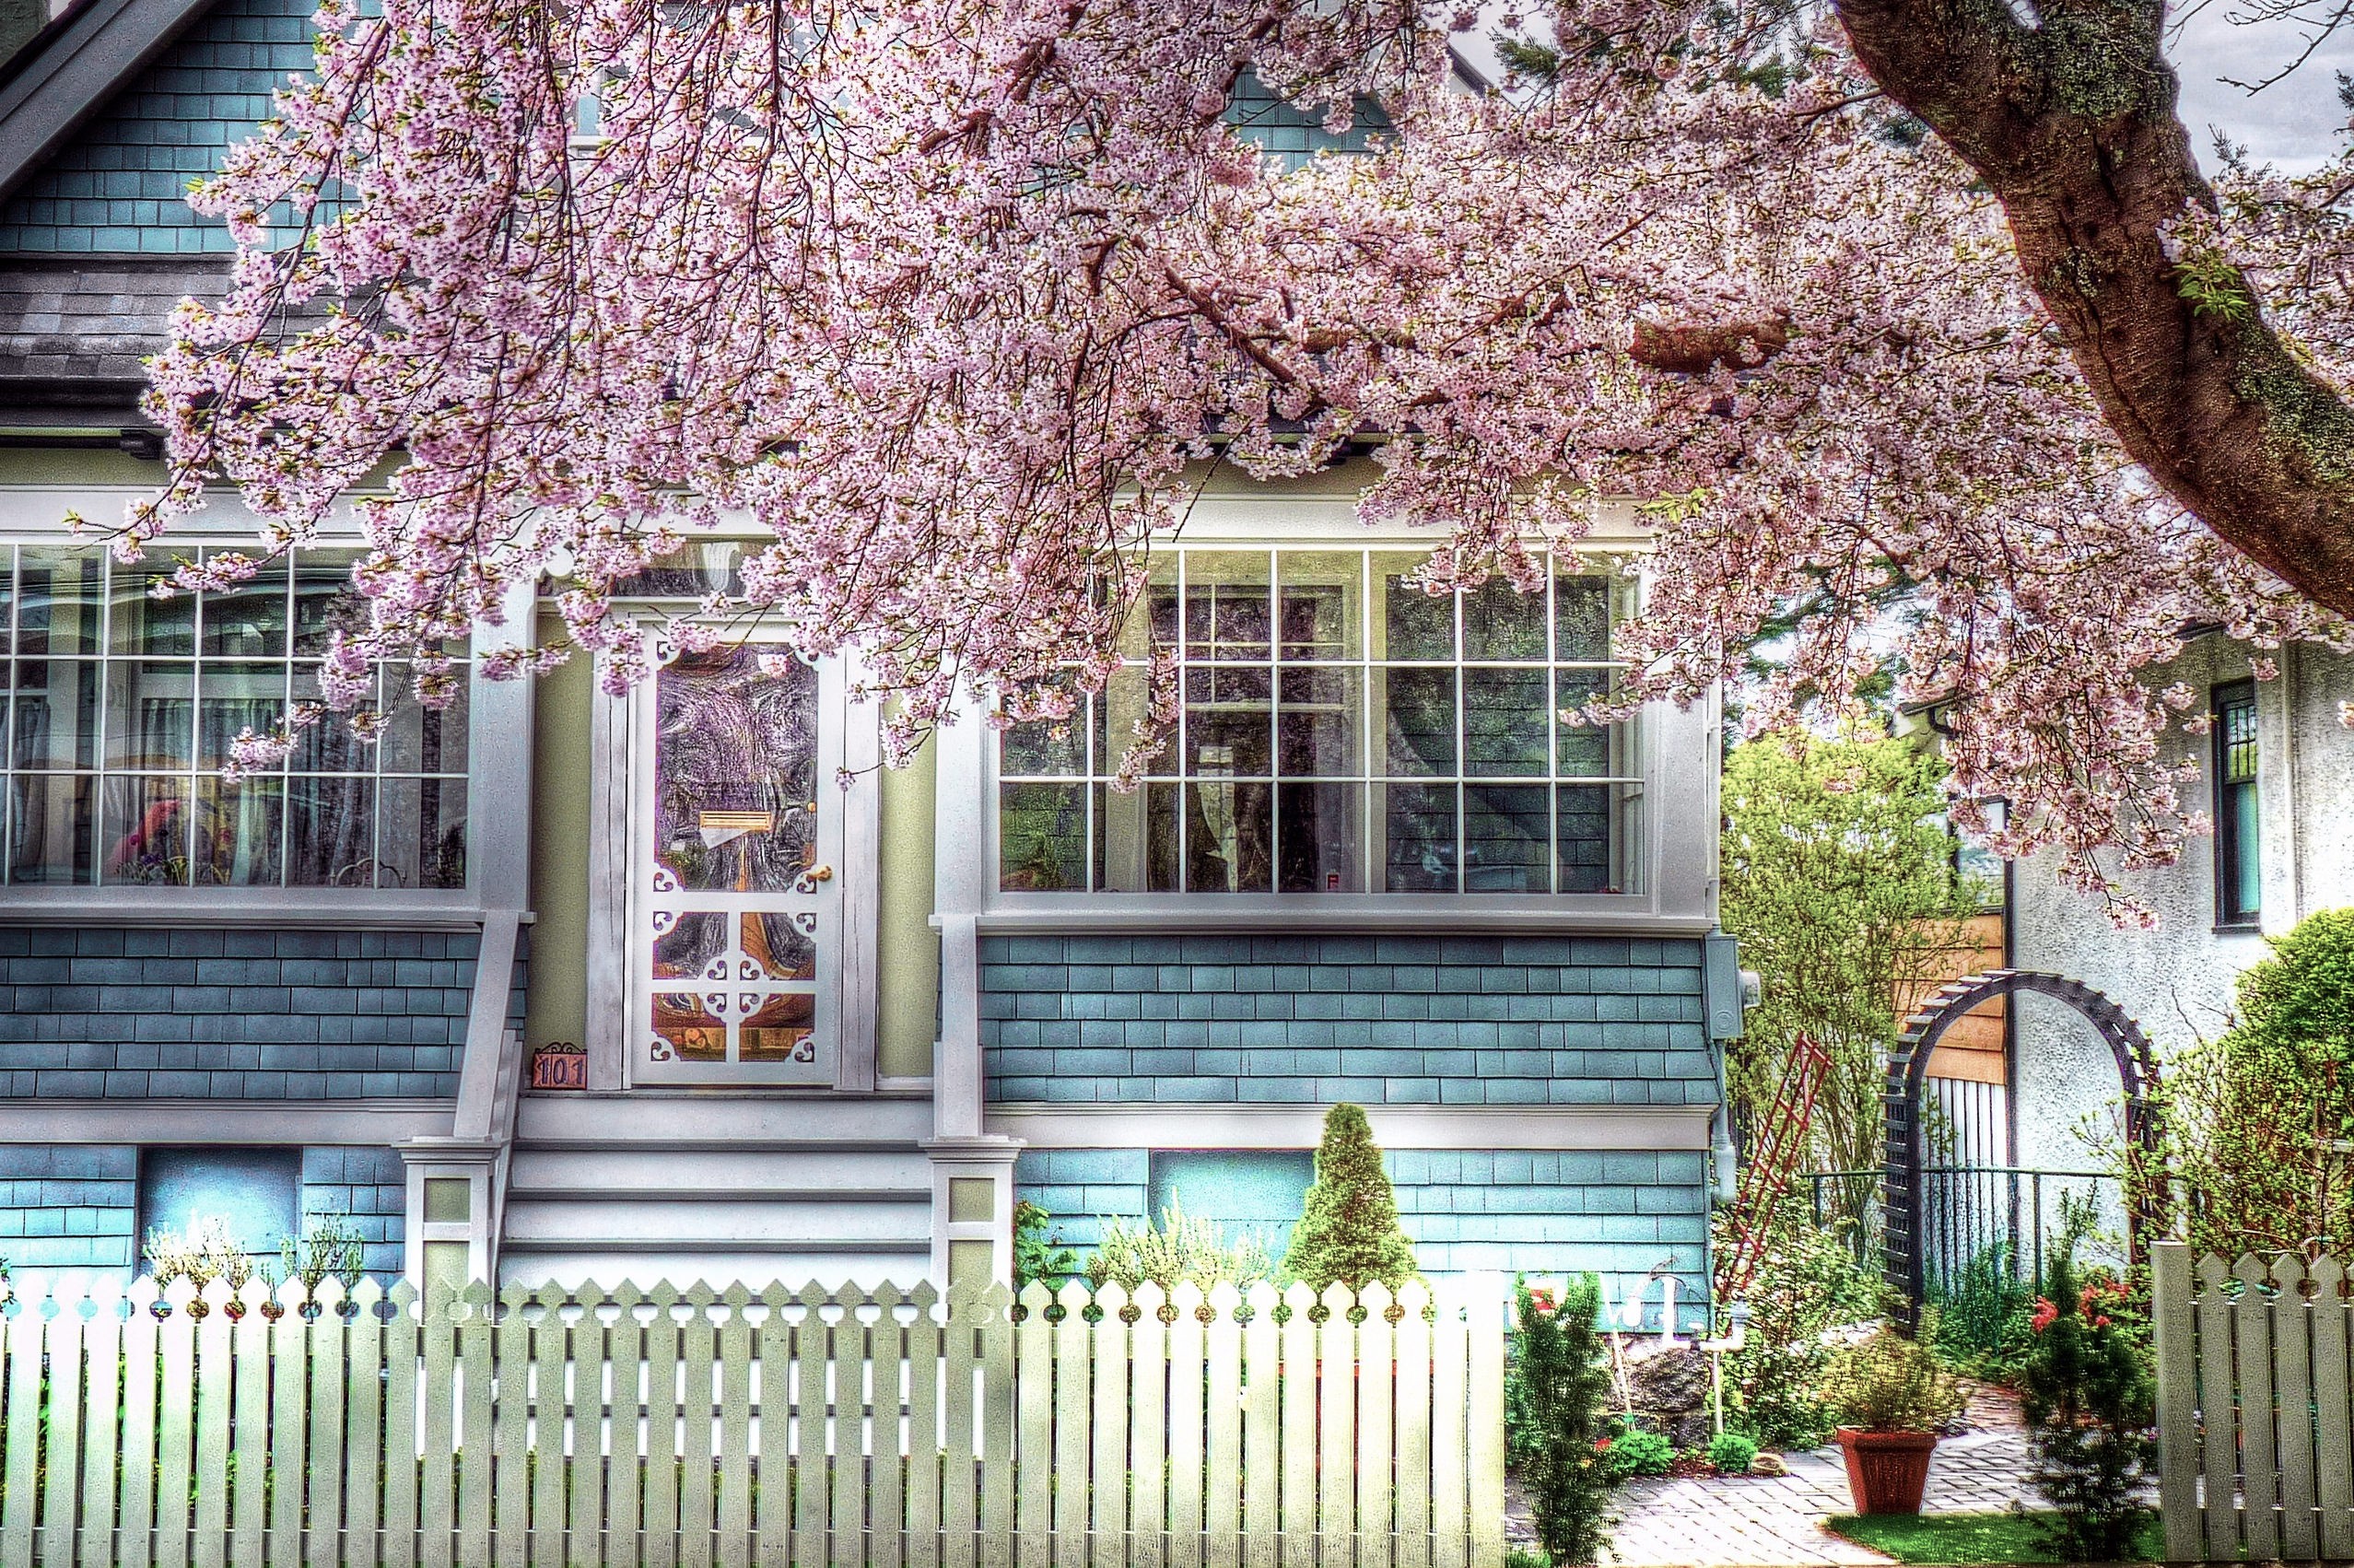 Spring Time Colorful Grass Peaceful Pink Tree Windows Stairs Sunny Colors Nature Vase Trees Architecture Houses Reflection Beauty Beautiful Lovely Pretty House Window Green Home View Fence Desktop Photo